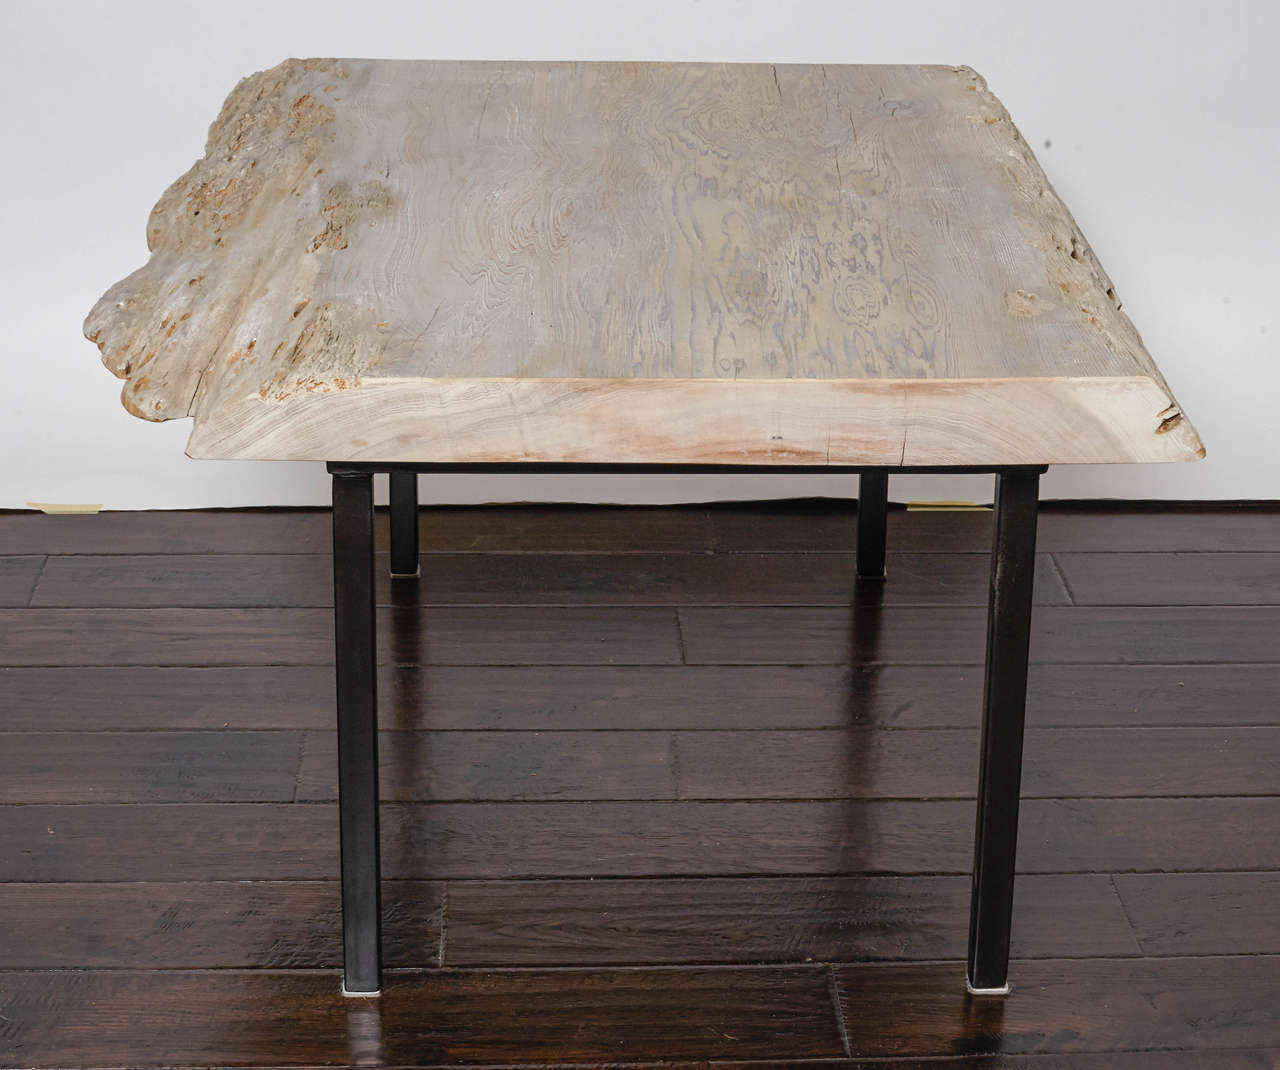 Elegant Pecky Cypress Coffee Table With Iron Legs 3